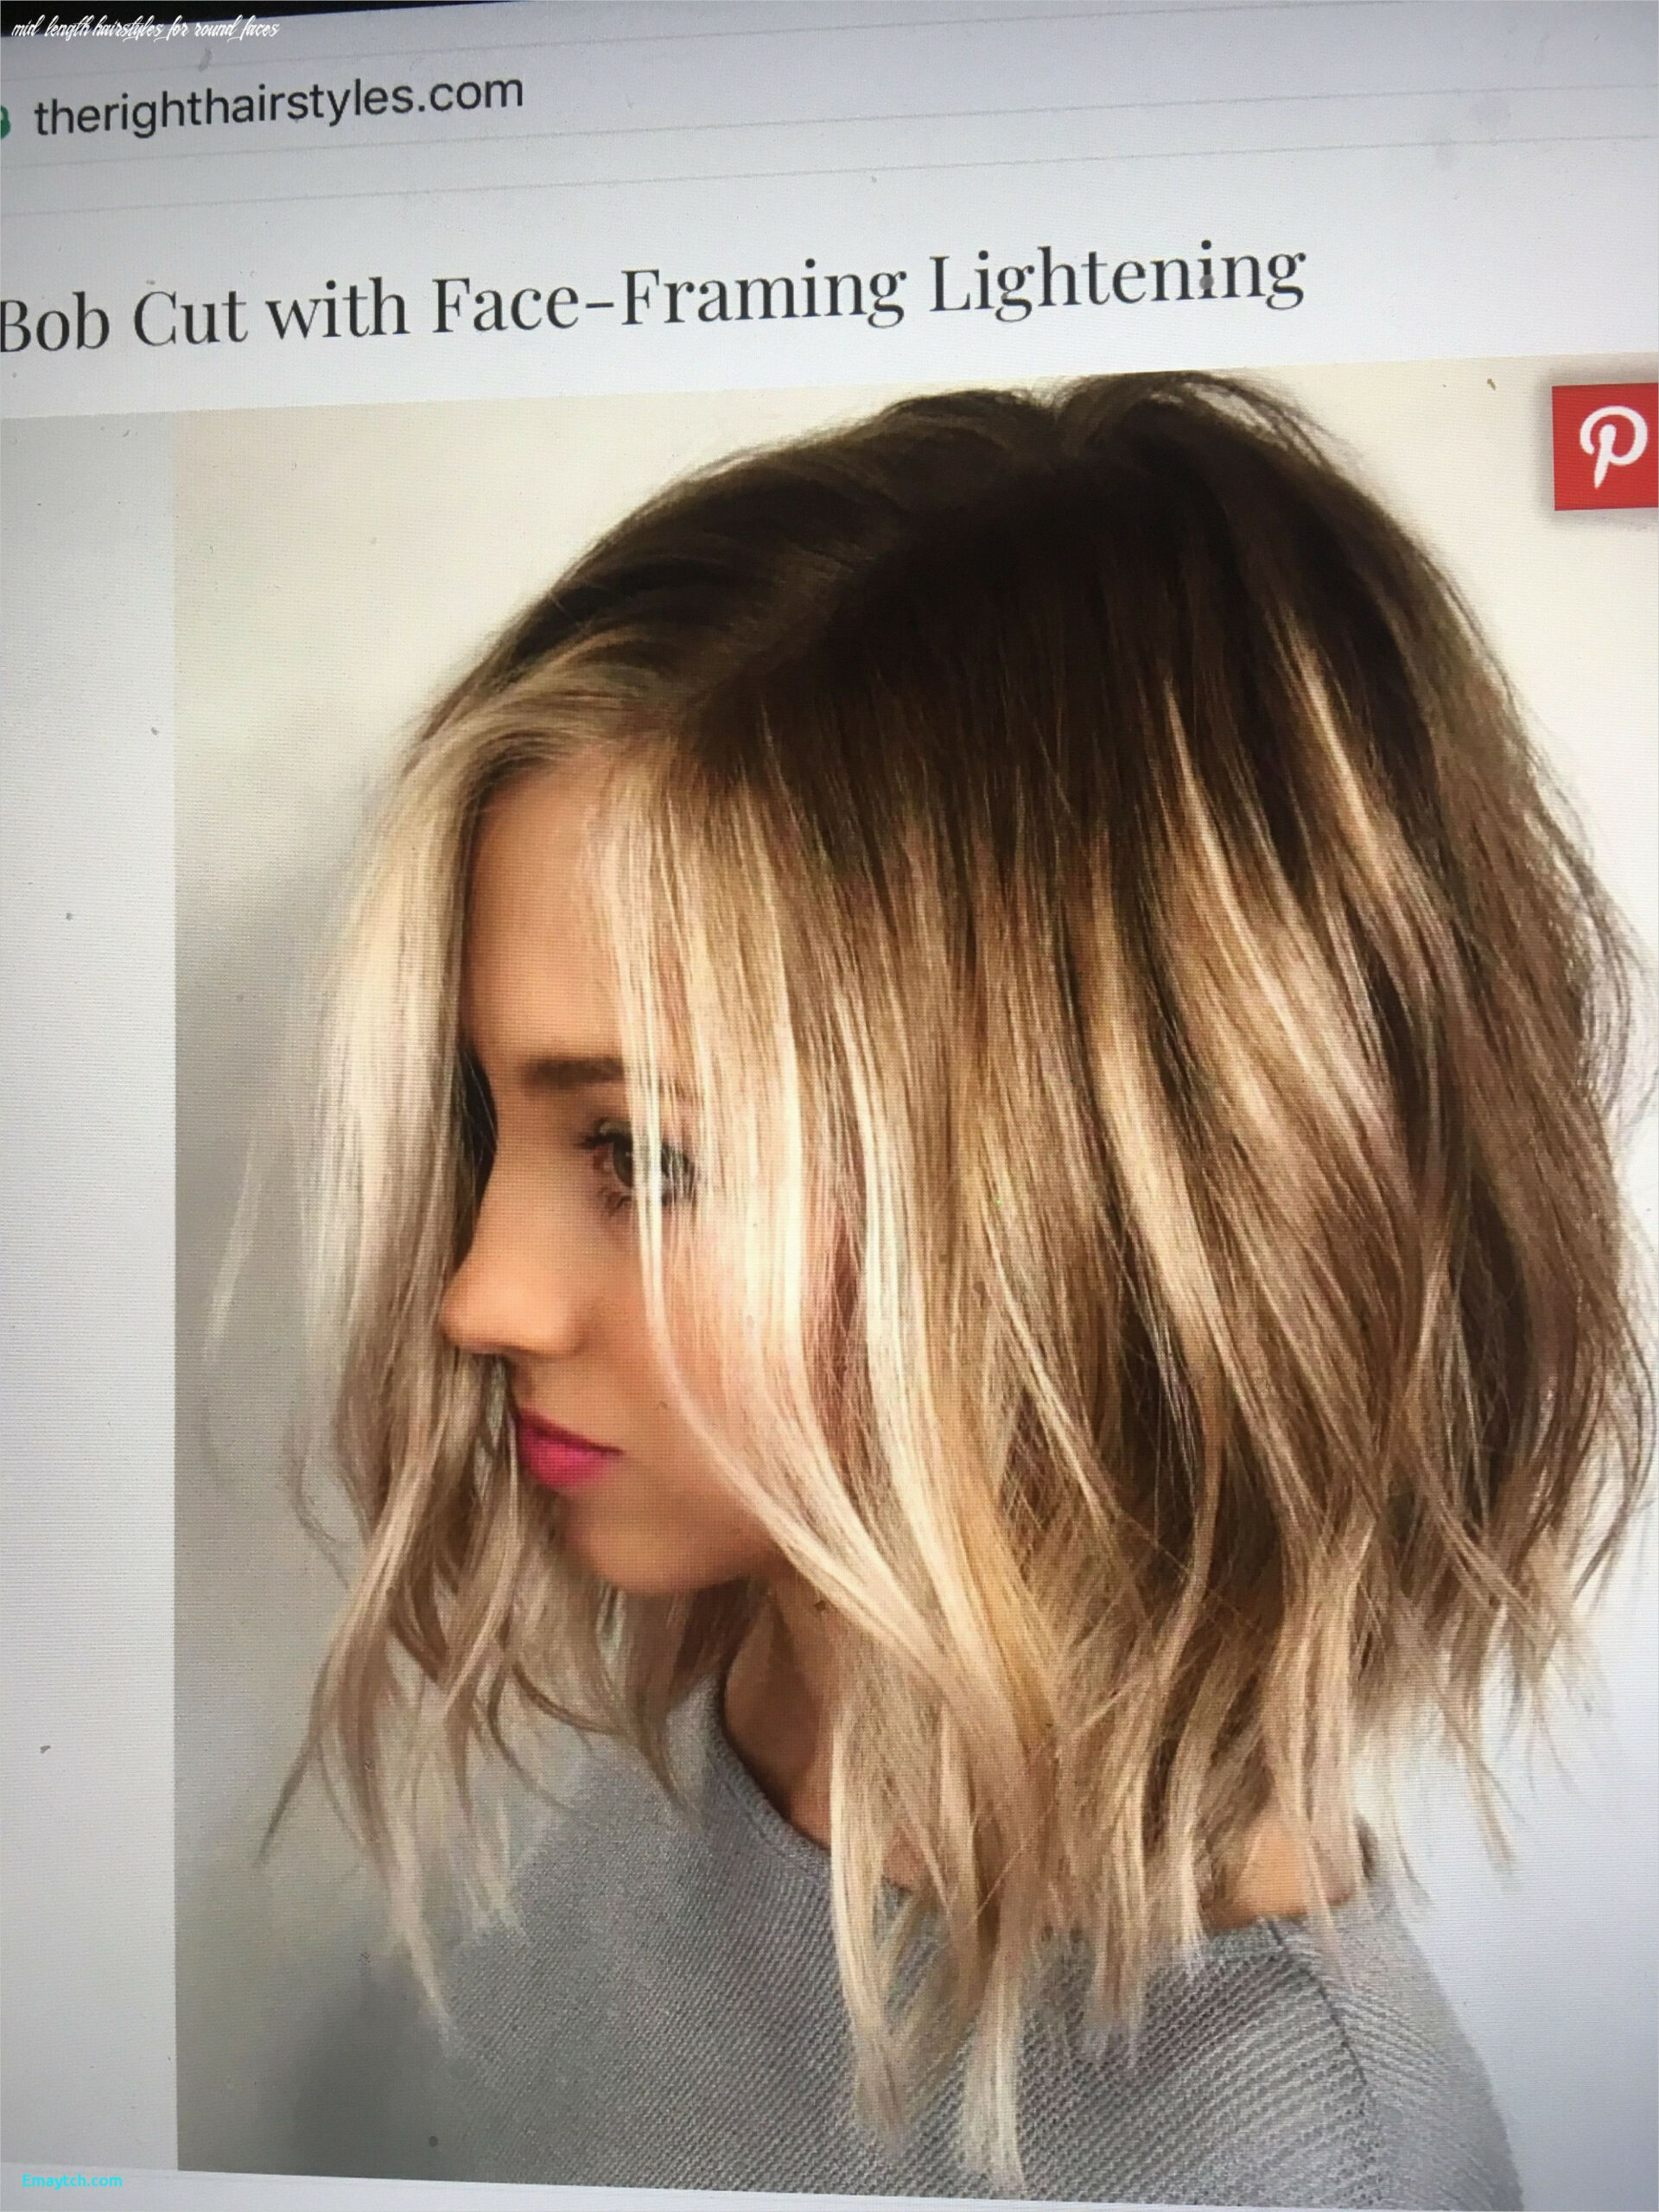 Pin on hair/accessories/nails mid length hairstyles for round faces